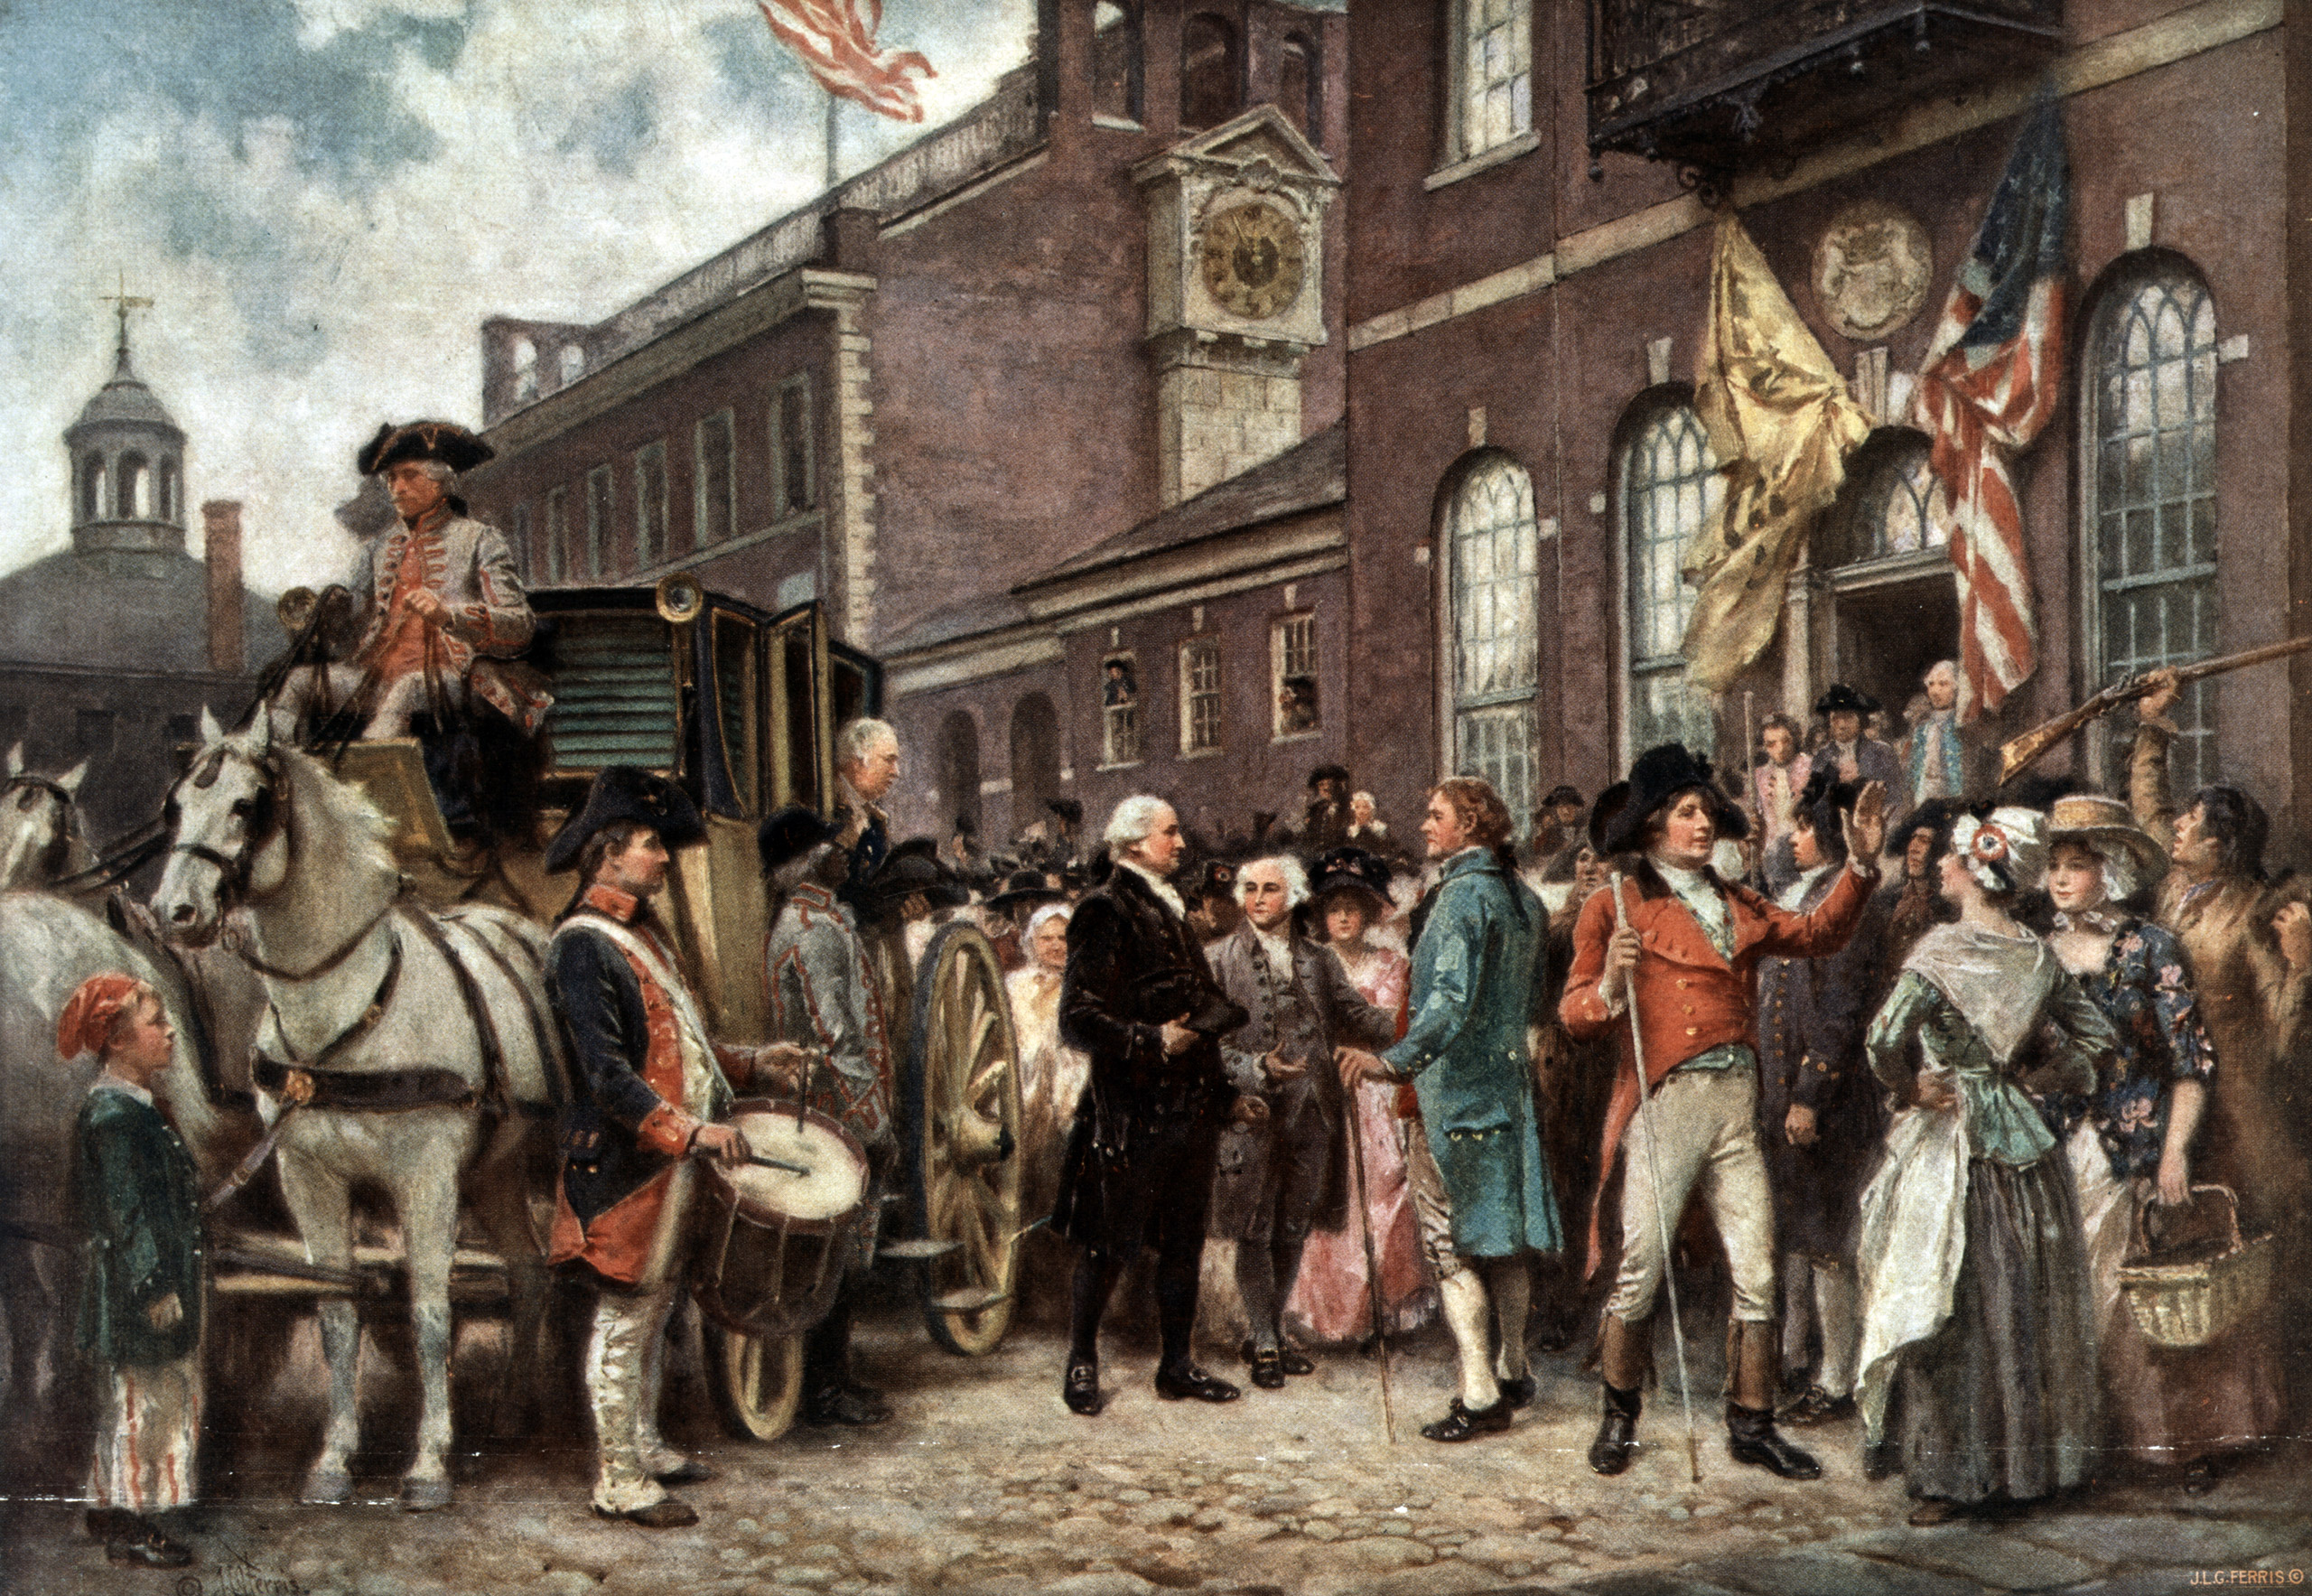 George Washington arriving at Congress Hall in Philadelphia, March 4, 1793 for his second inauguration.